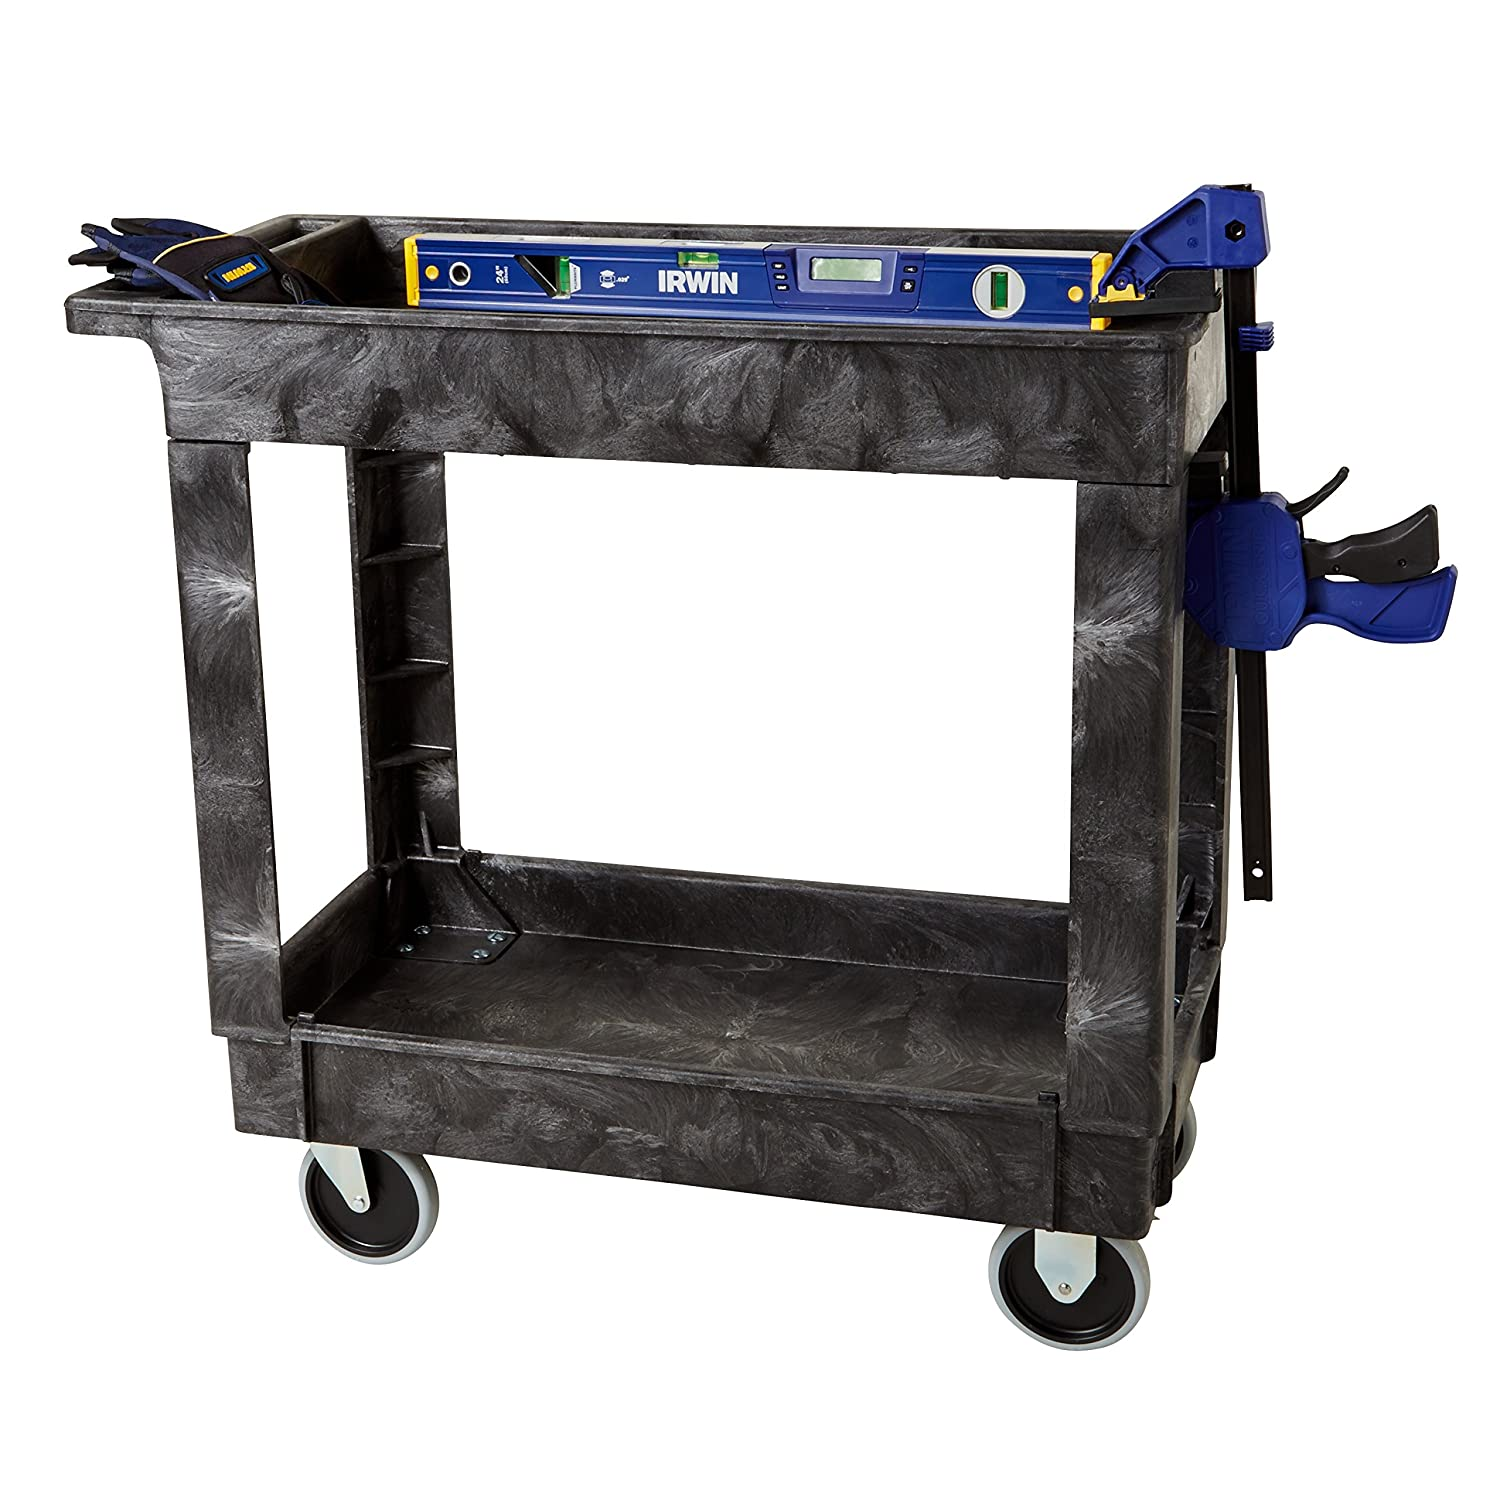 Rubbermaid Commercial Products 2-Shelf Utility/Service Cart, Small, Lipped Shelves, Standard Handle, 500 lbs. Capacity, for Warehouse/Garage/Cleaning/Manufacturing (FG9T6600BLA): Industrial & Scientific